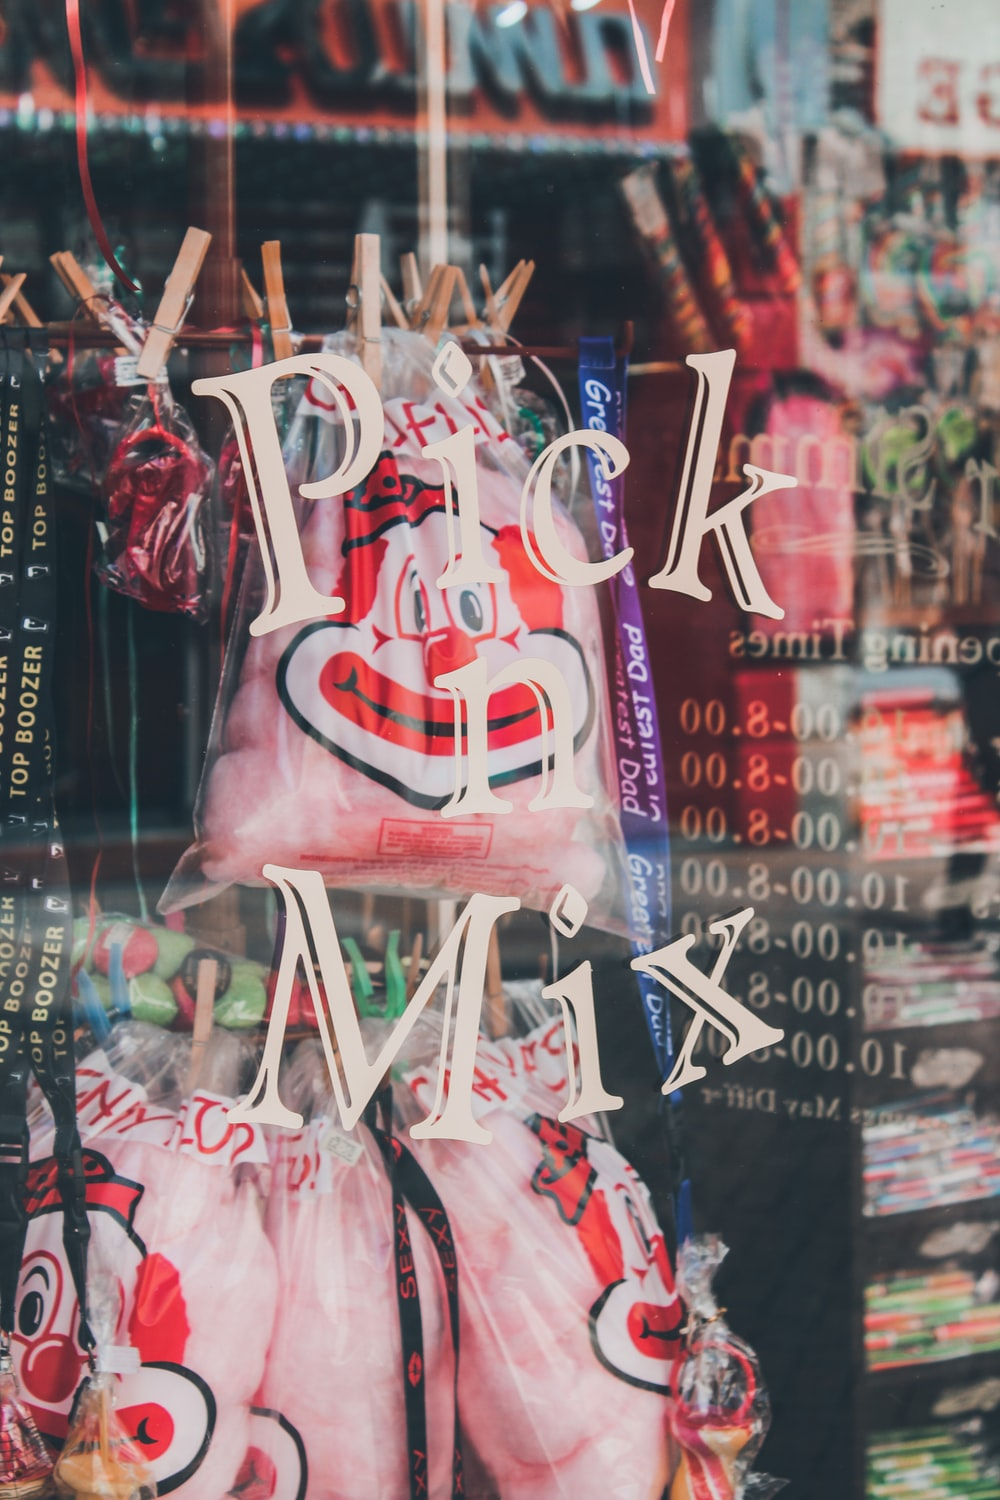 displayed bags inside Pick Mix shop